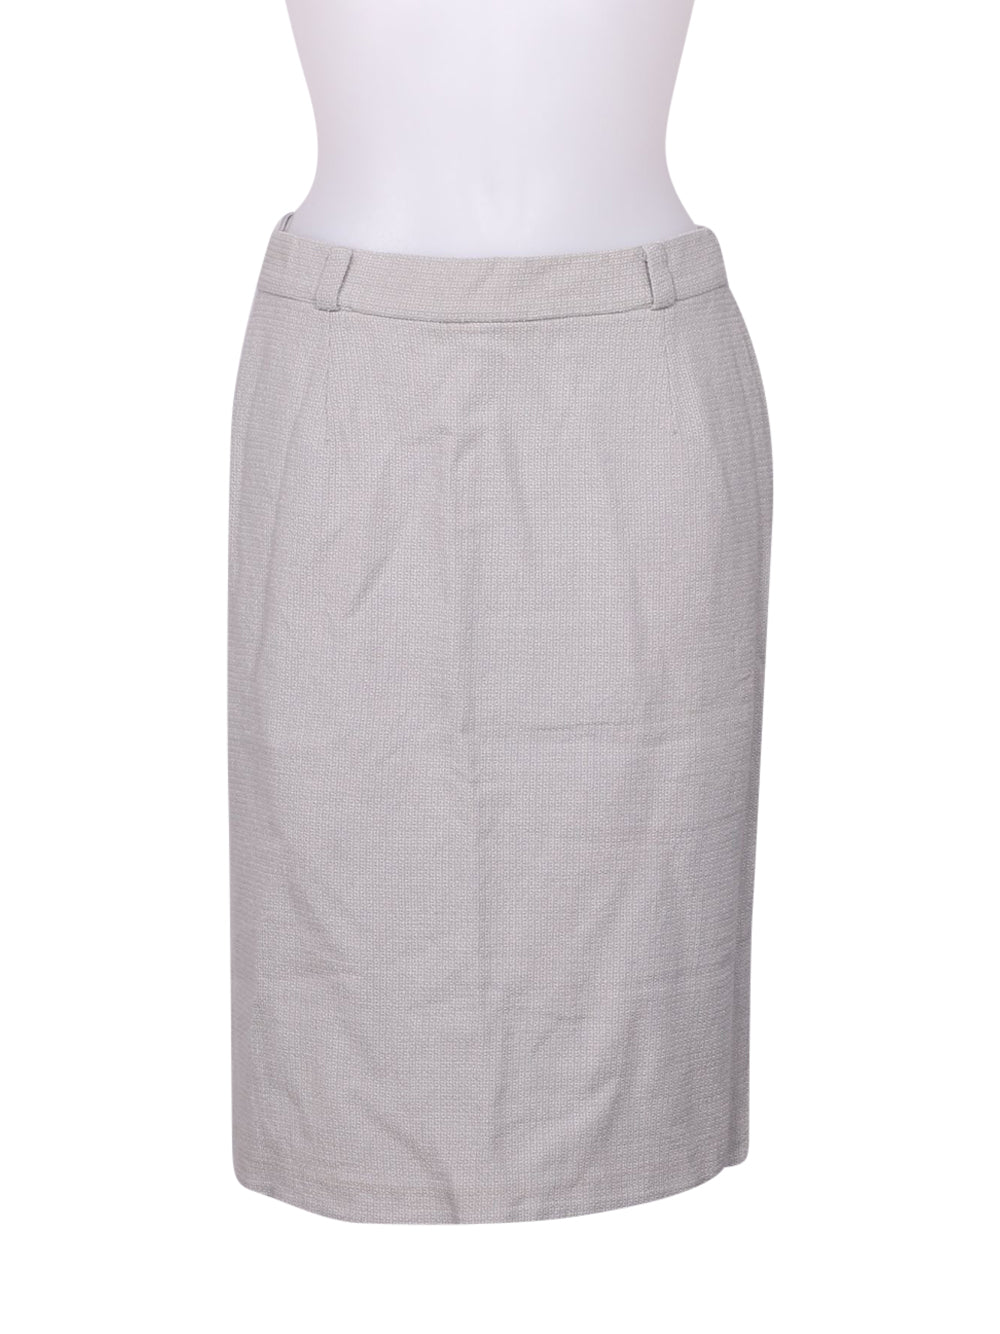 Front photo of Preloved Les Copains Grey Woman's skirt - size 14/XL